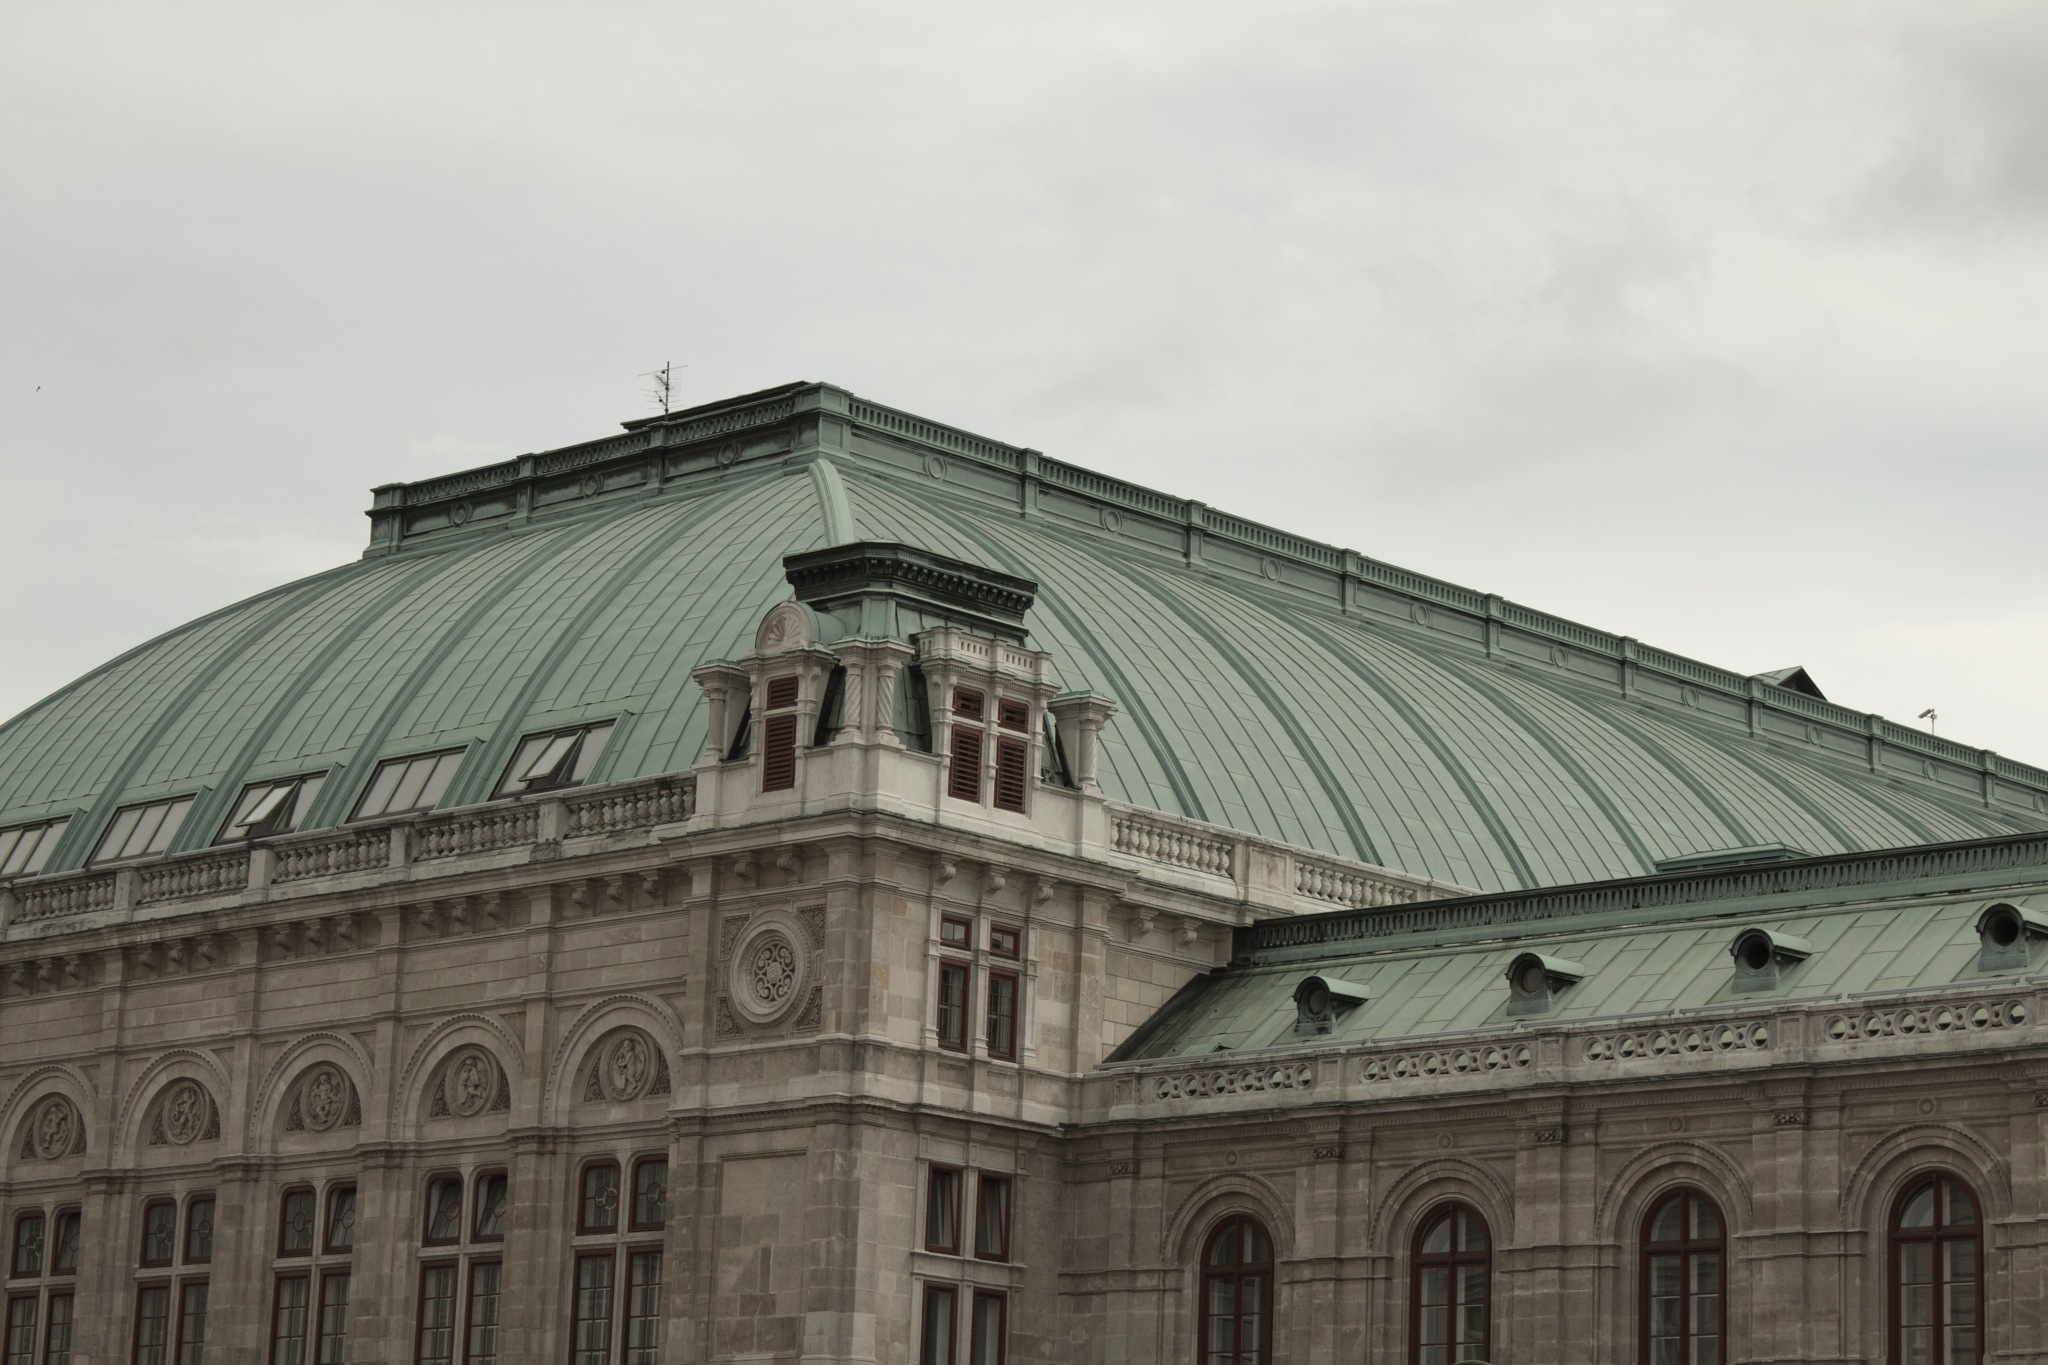 Postcards from Vienna #1 by Mateusz Janik